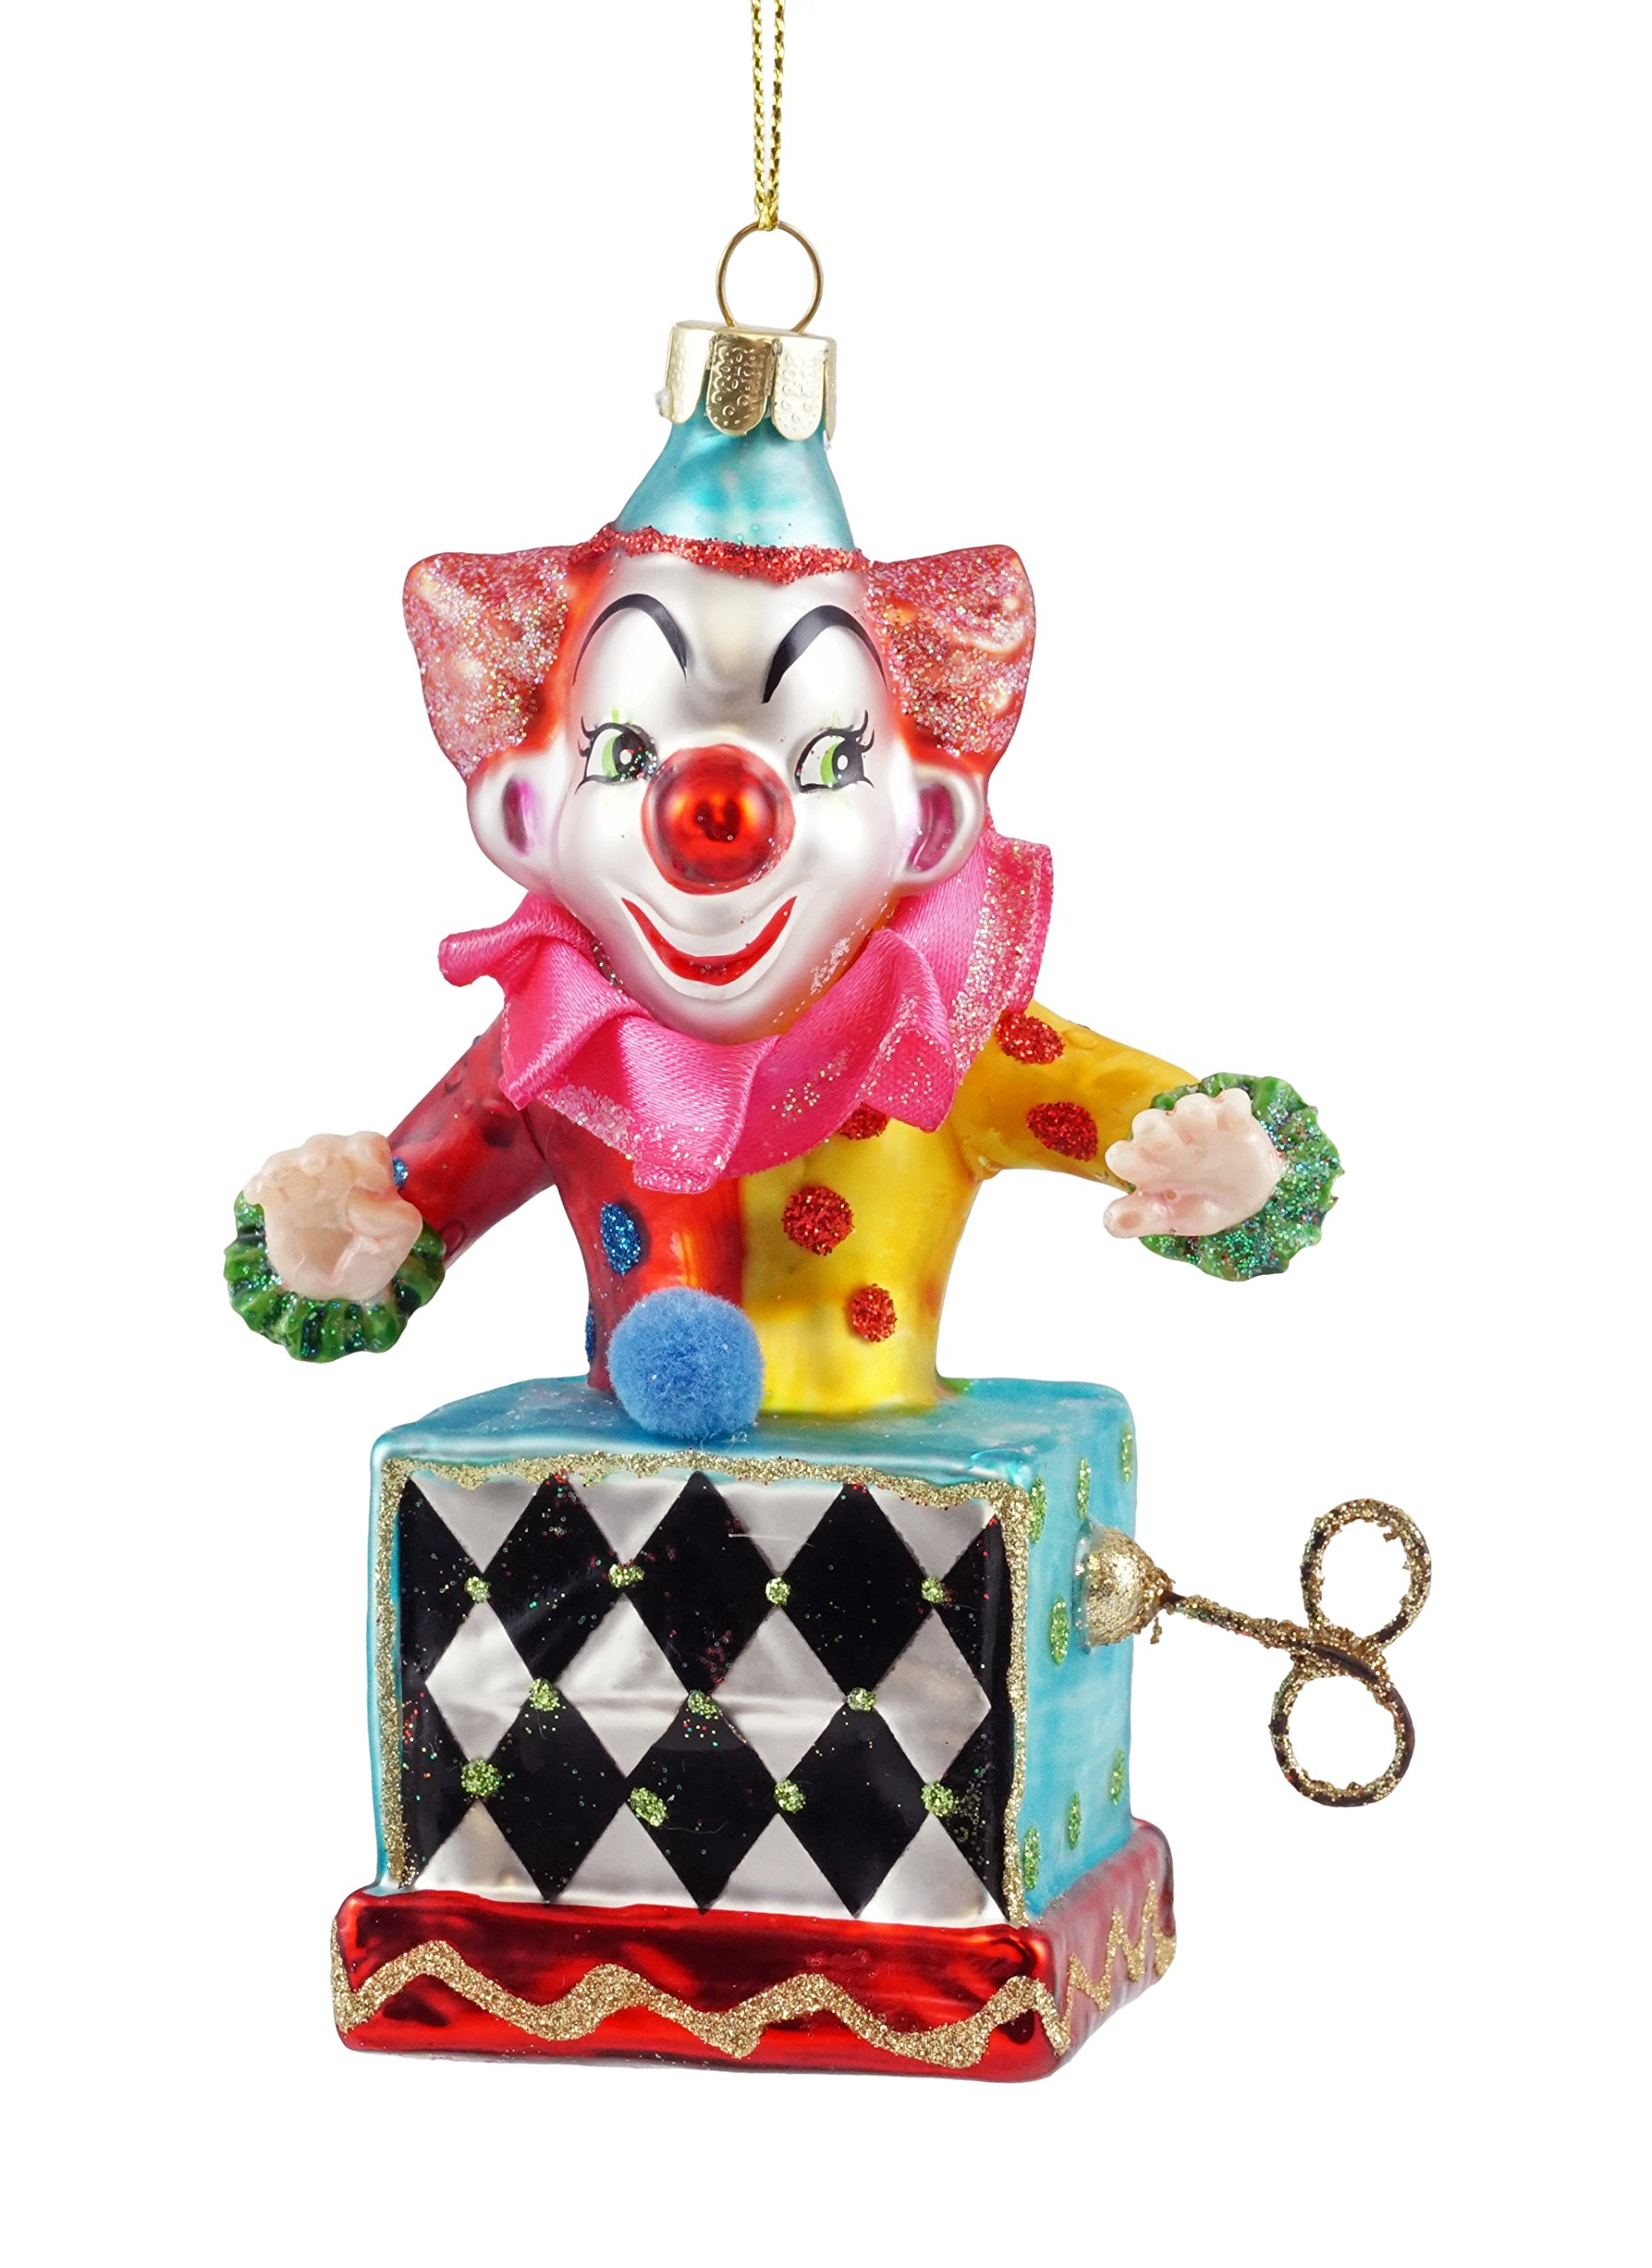 Midwest-CBK Jack in the Box Clown Hanging Christmas Ornament by Midwest-CBK